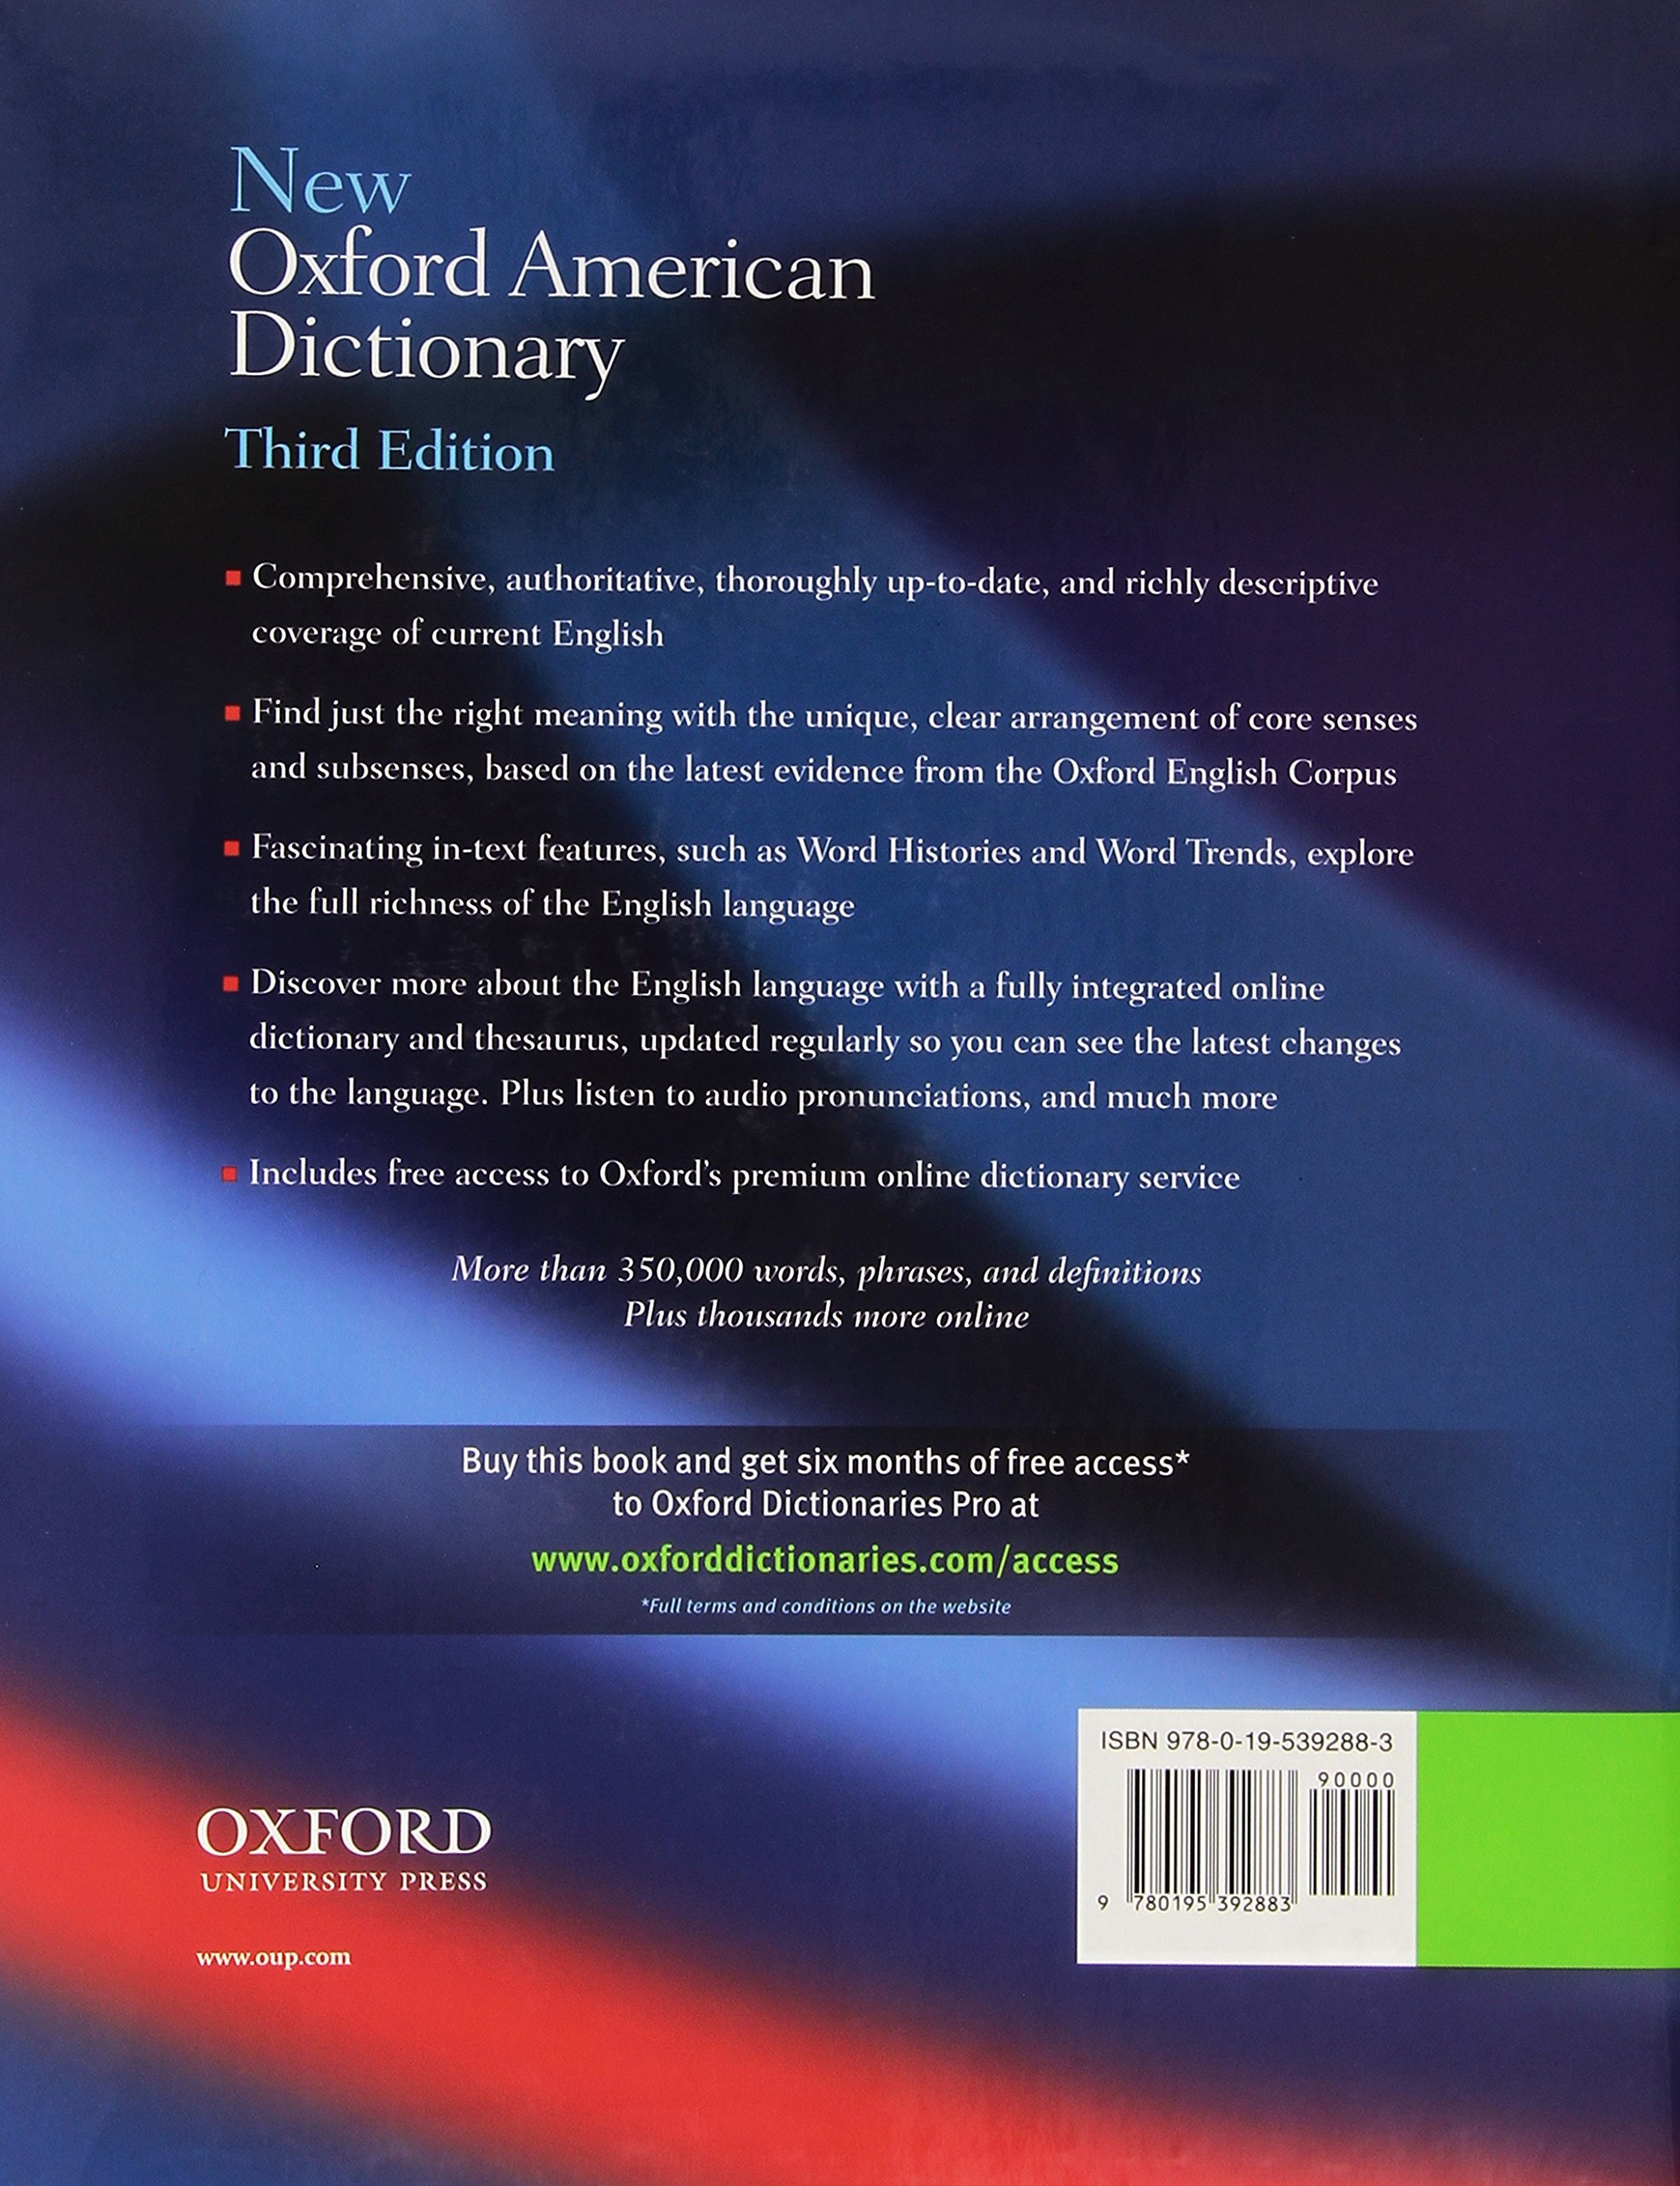 New Oxford American Dictionary 3rd Edition by Oxford University Press